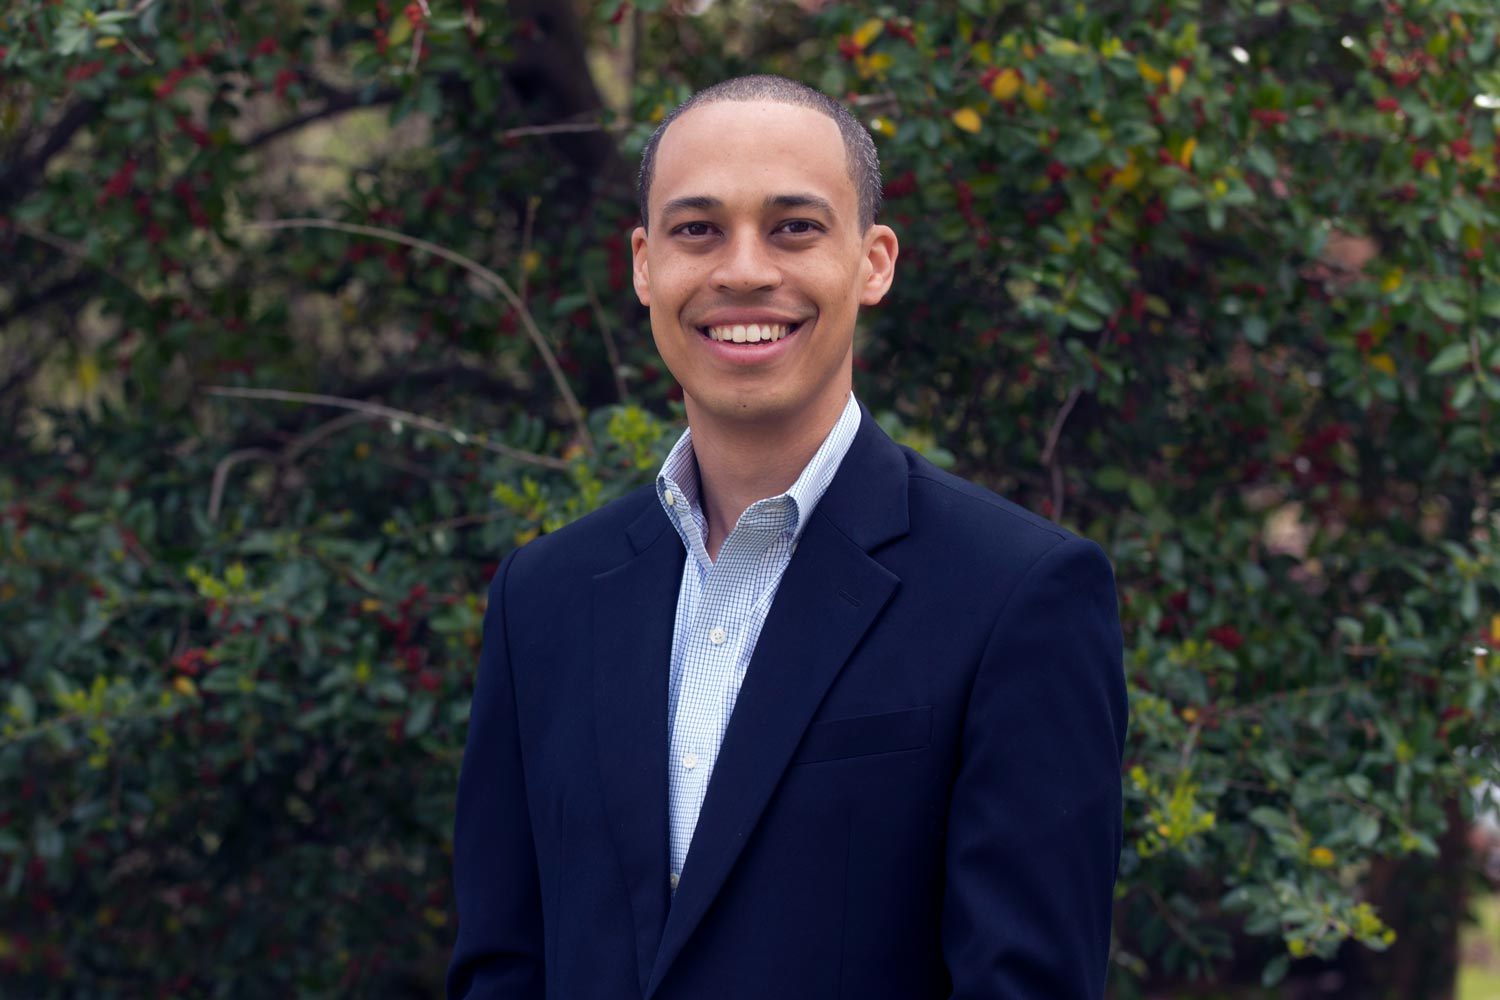 Del. Jay Jones of Norfolk, a 2015 graduate of UVA's School of Law, represents the 89th District in the Virginia House of Delegates.